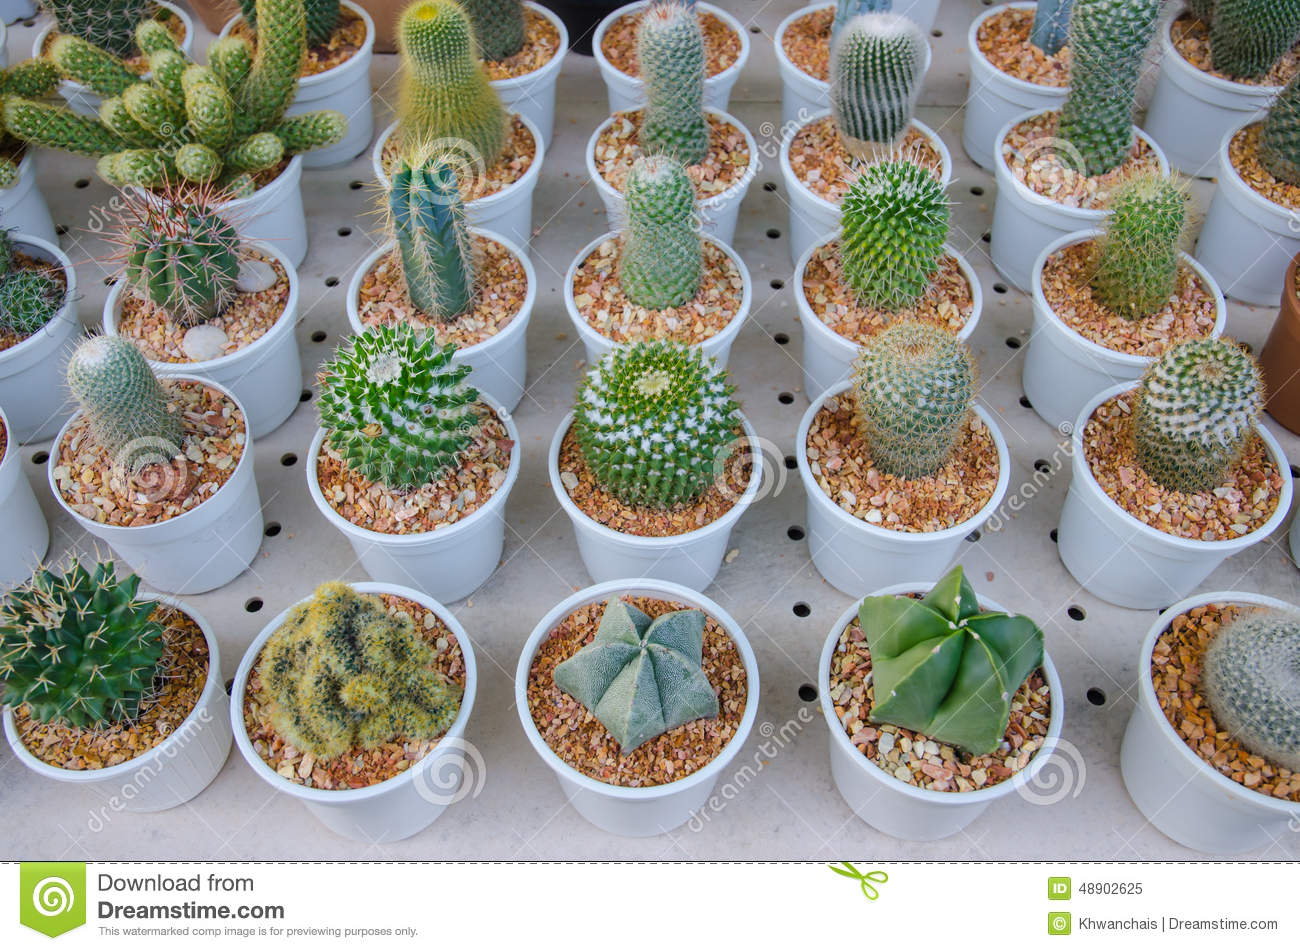 small different types of cactus plants stock image image 48902625. Black Bedroom Furniture Sets. Home Design Ideas